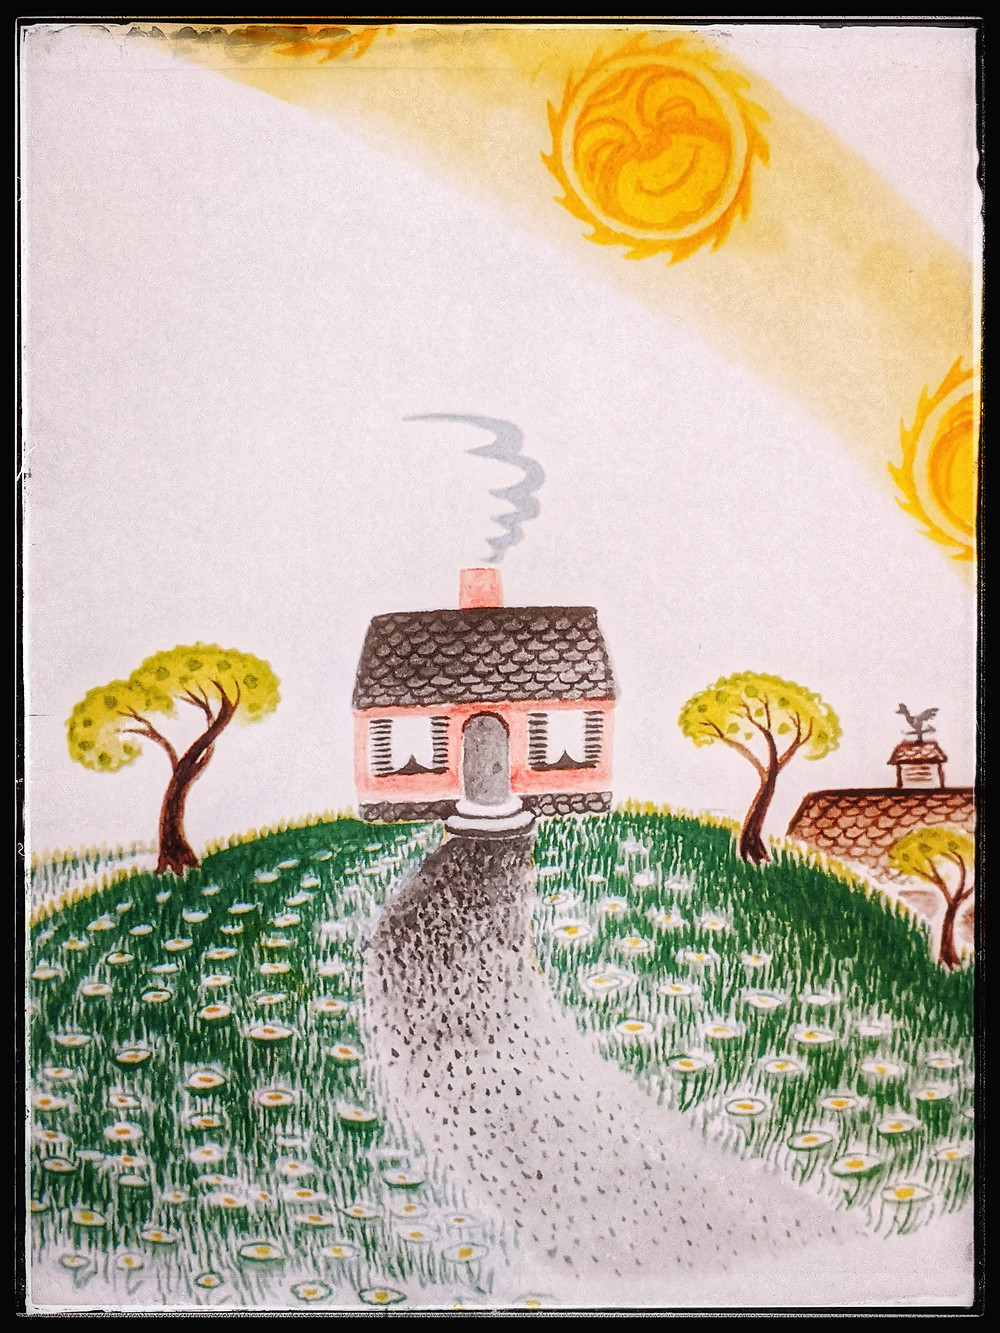 inside-illustration-from-the-book-The-Little-House-By-Mary-Blair